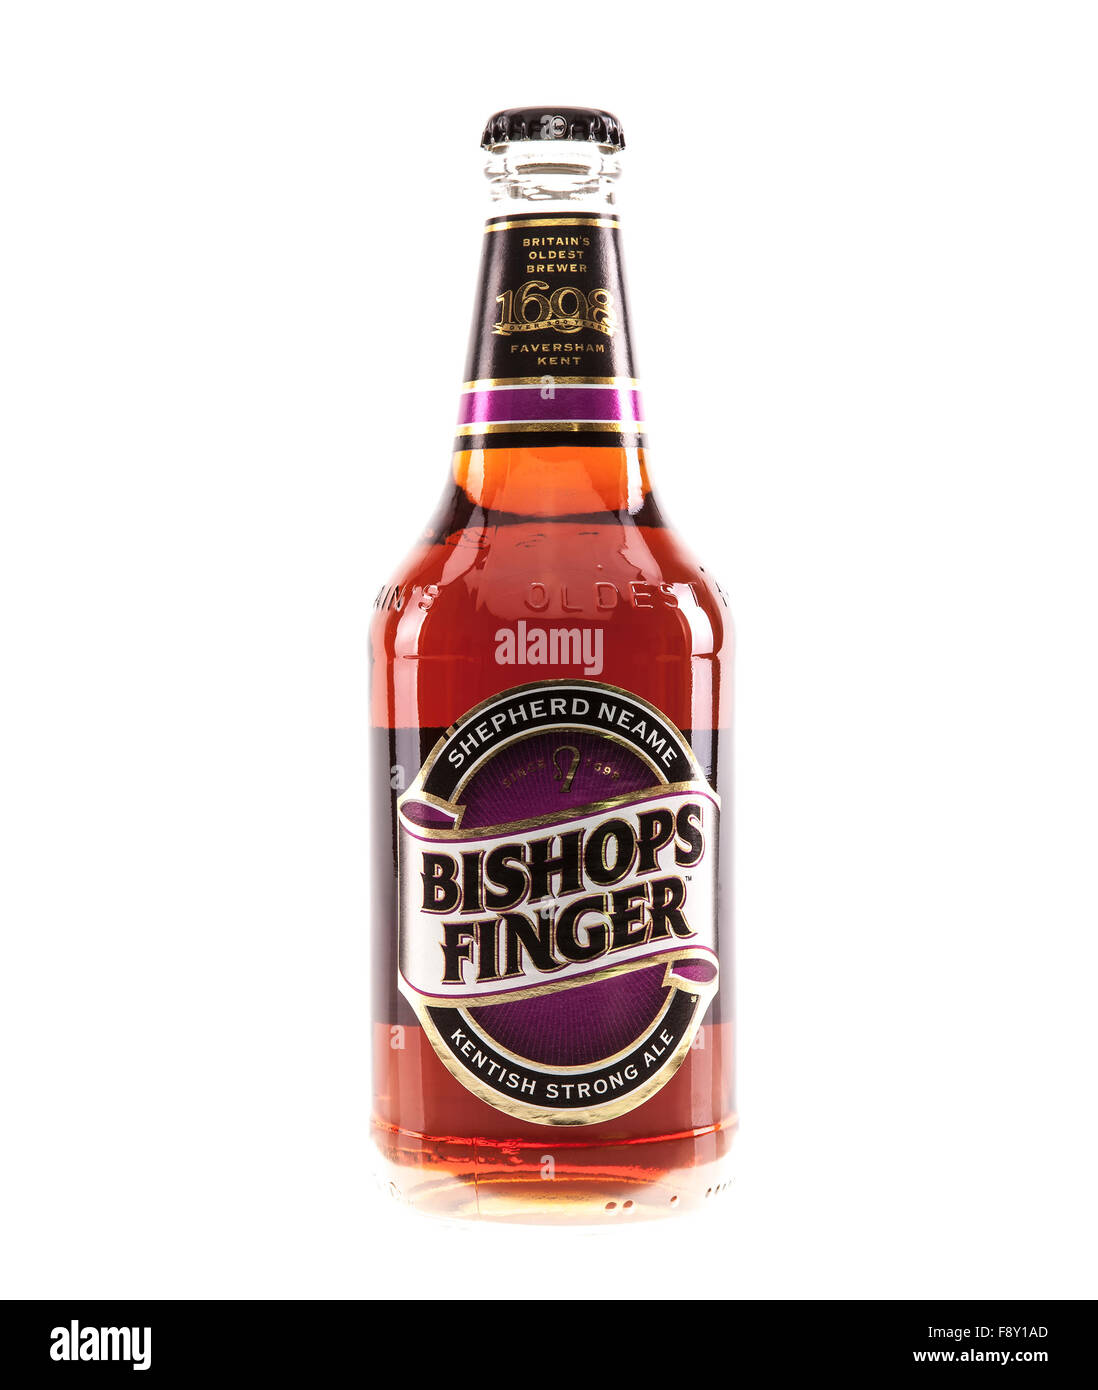 Bottle of Bishops Finger real ale brewed by Shepherd Neame Britain's oldest brewer 1698 - Stock Image